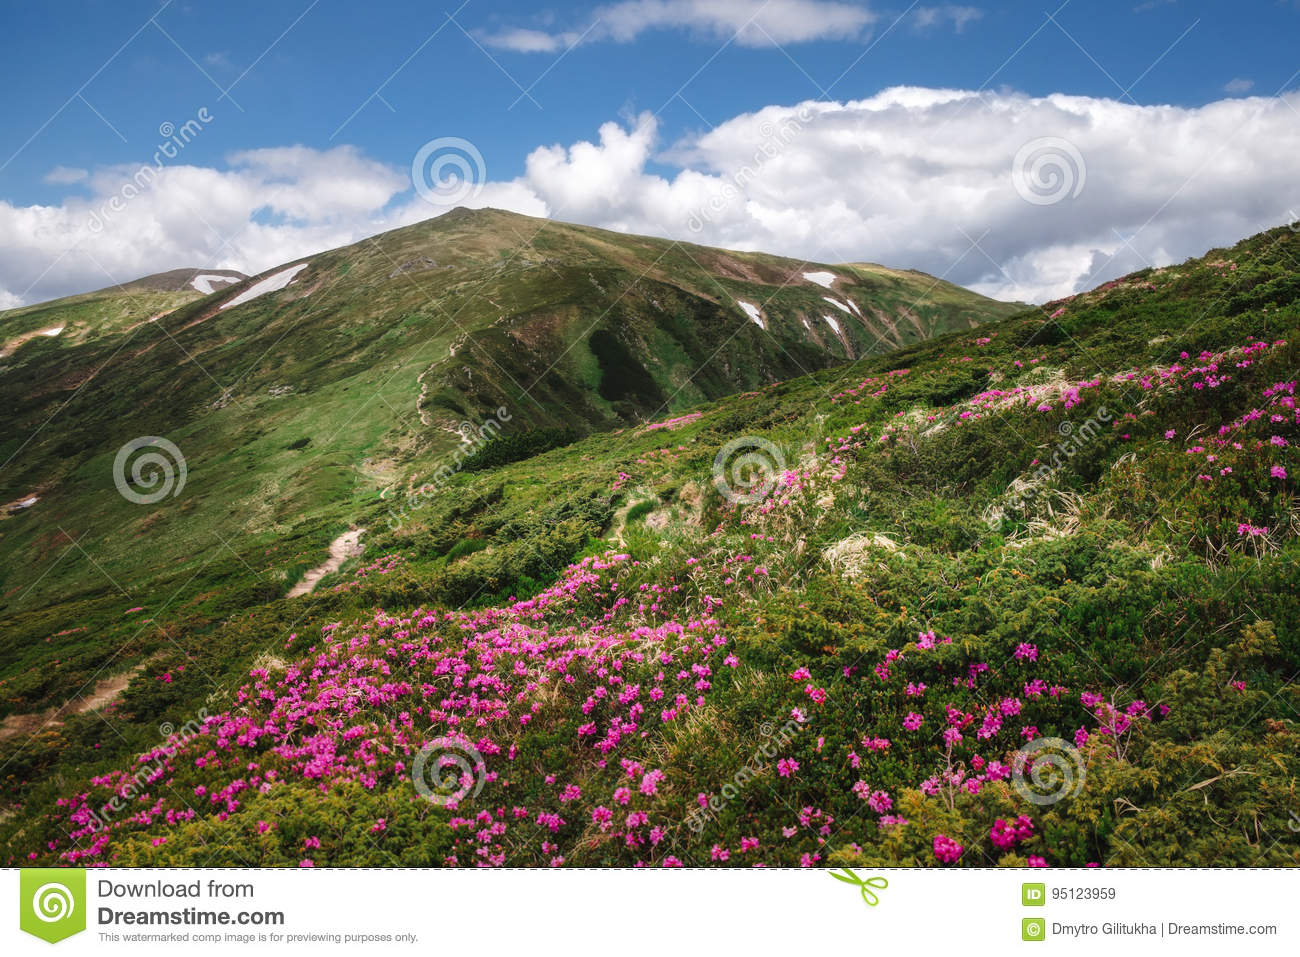 Green mountain landscape with blossoming pink rhododendron flowers in Carpathian mountains with blue sky on background